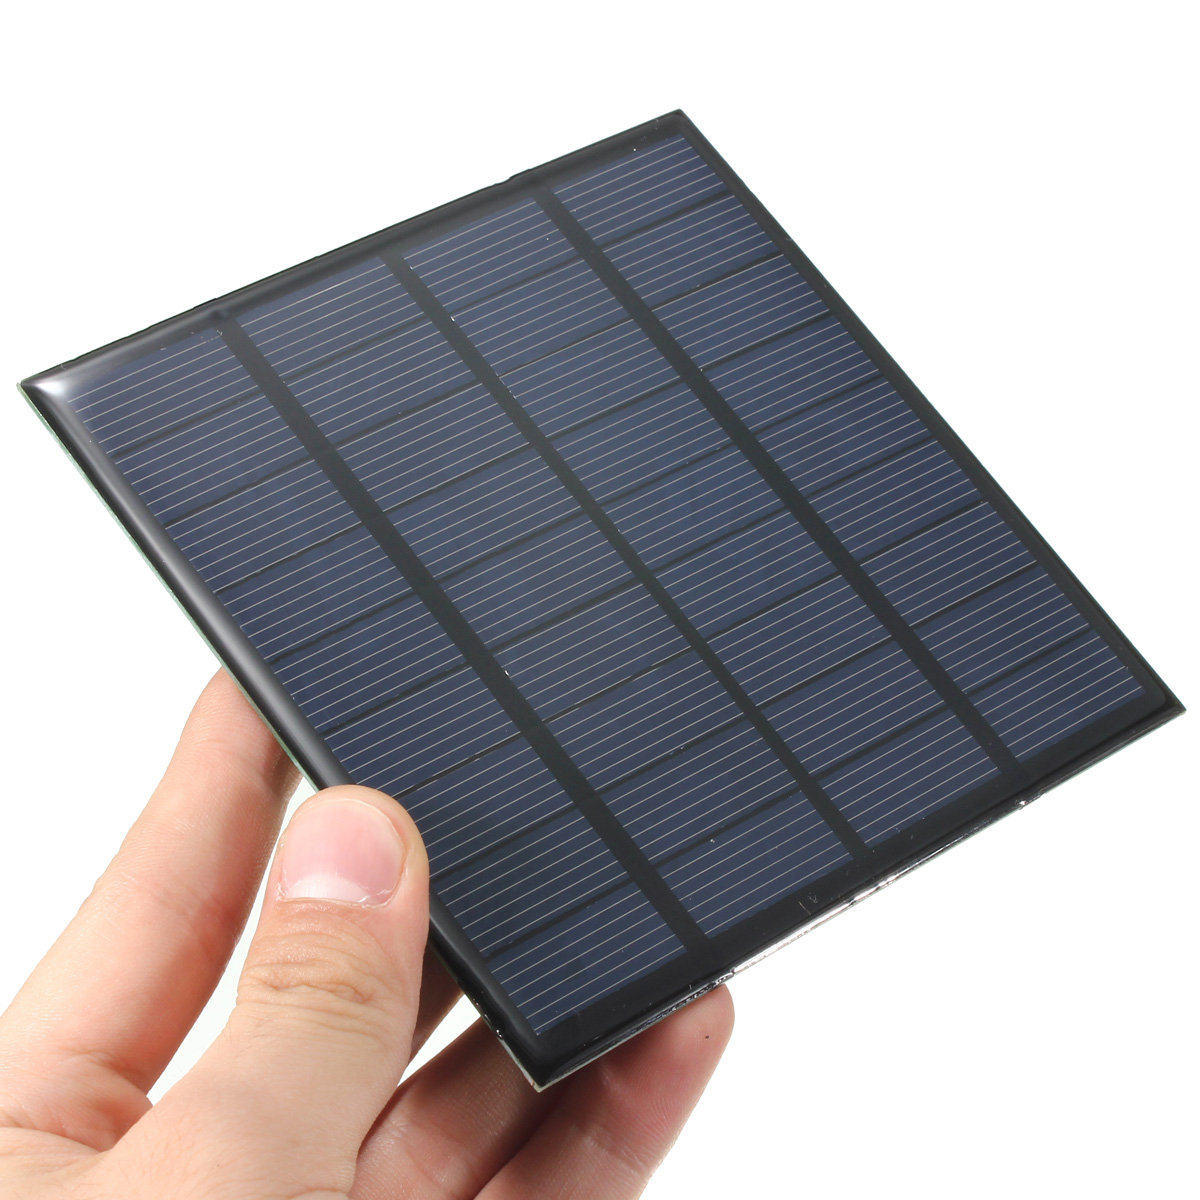 CLAITE Solar Battery Charger 9V 2W 222mA Solar Panel Kit DIY 6V Battery Charger Module Epoxy PV Monocrystalline Cells 115*115mm